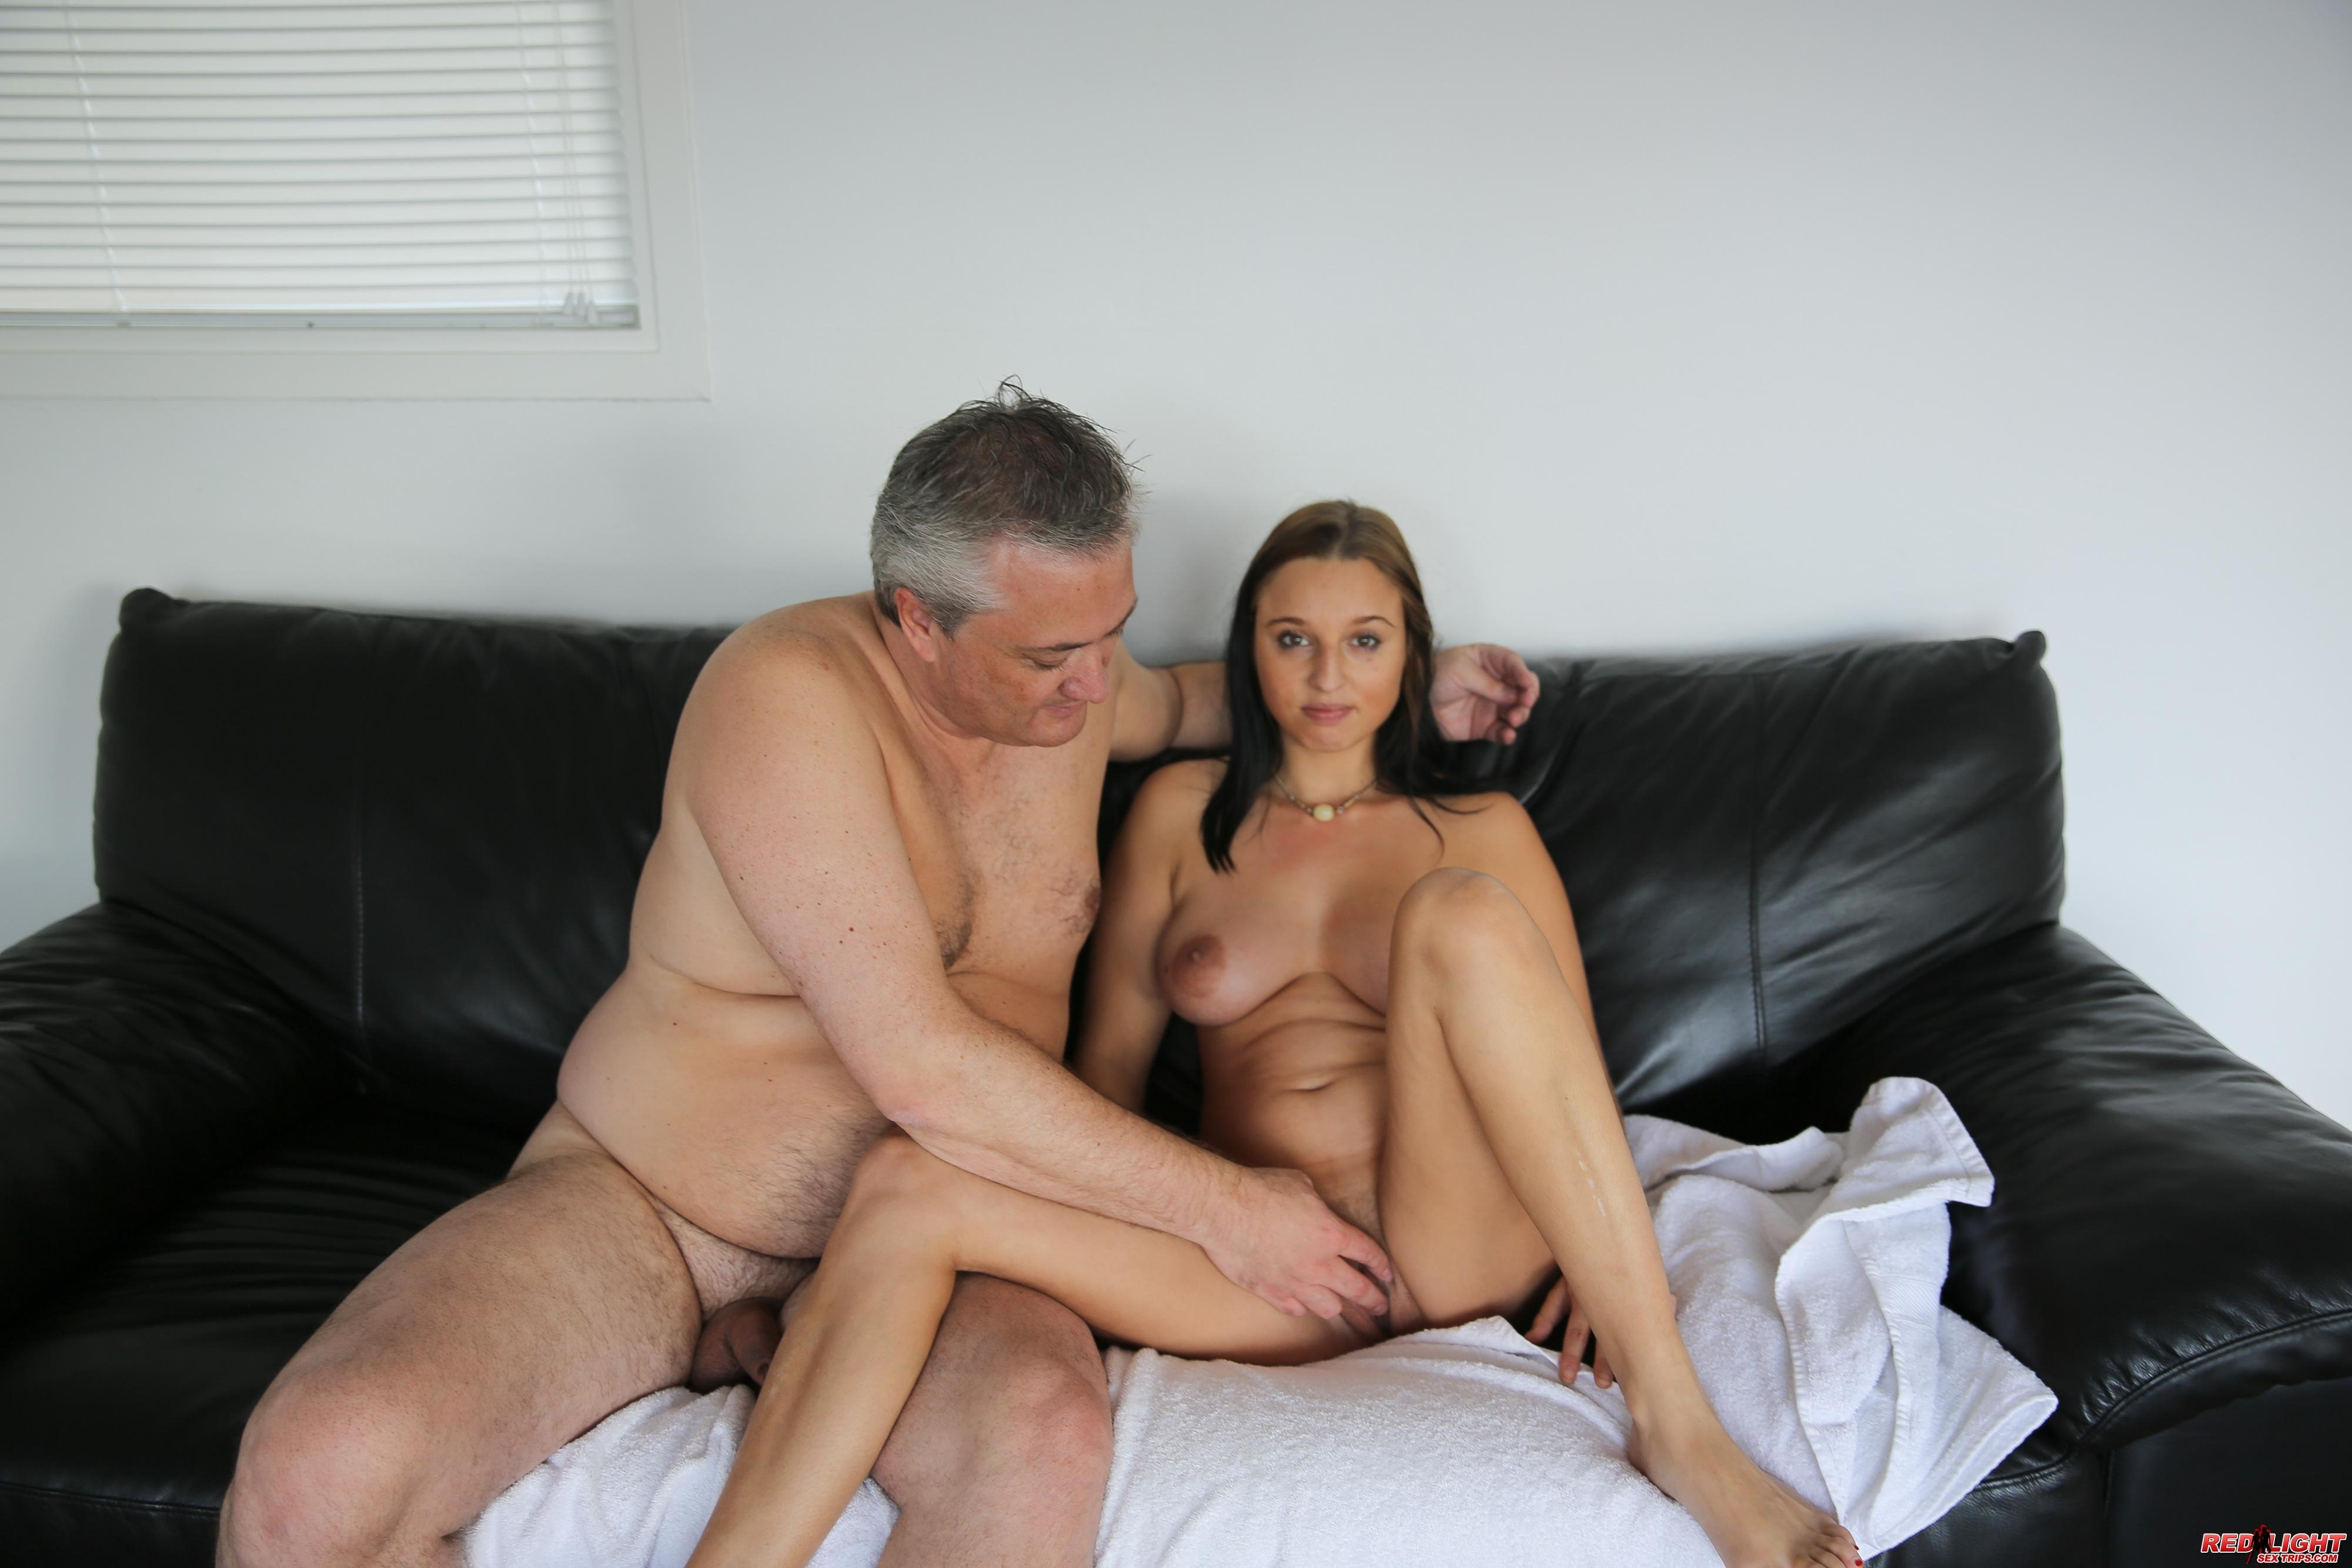 Nude Girls Young And Old